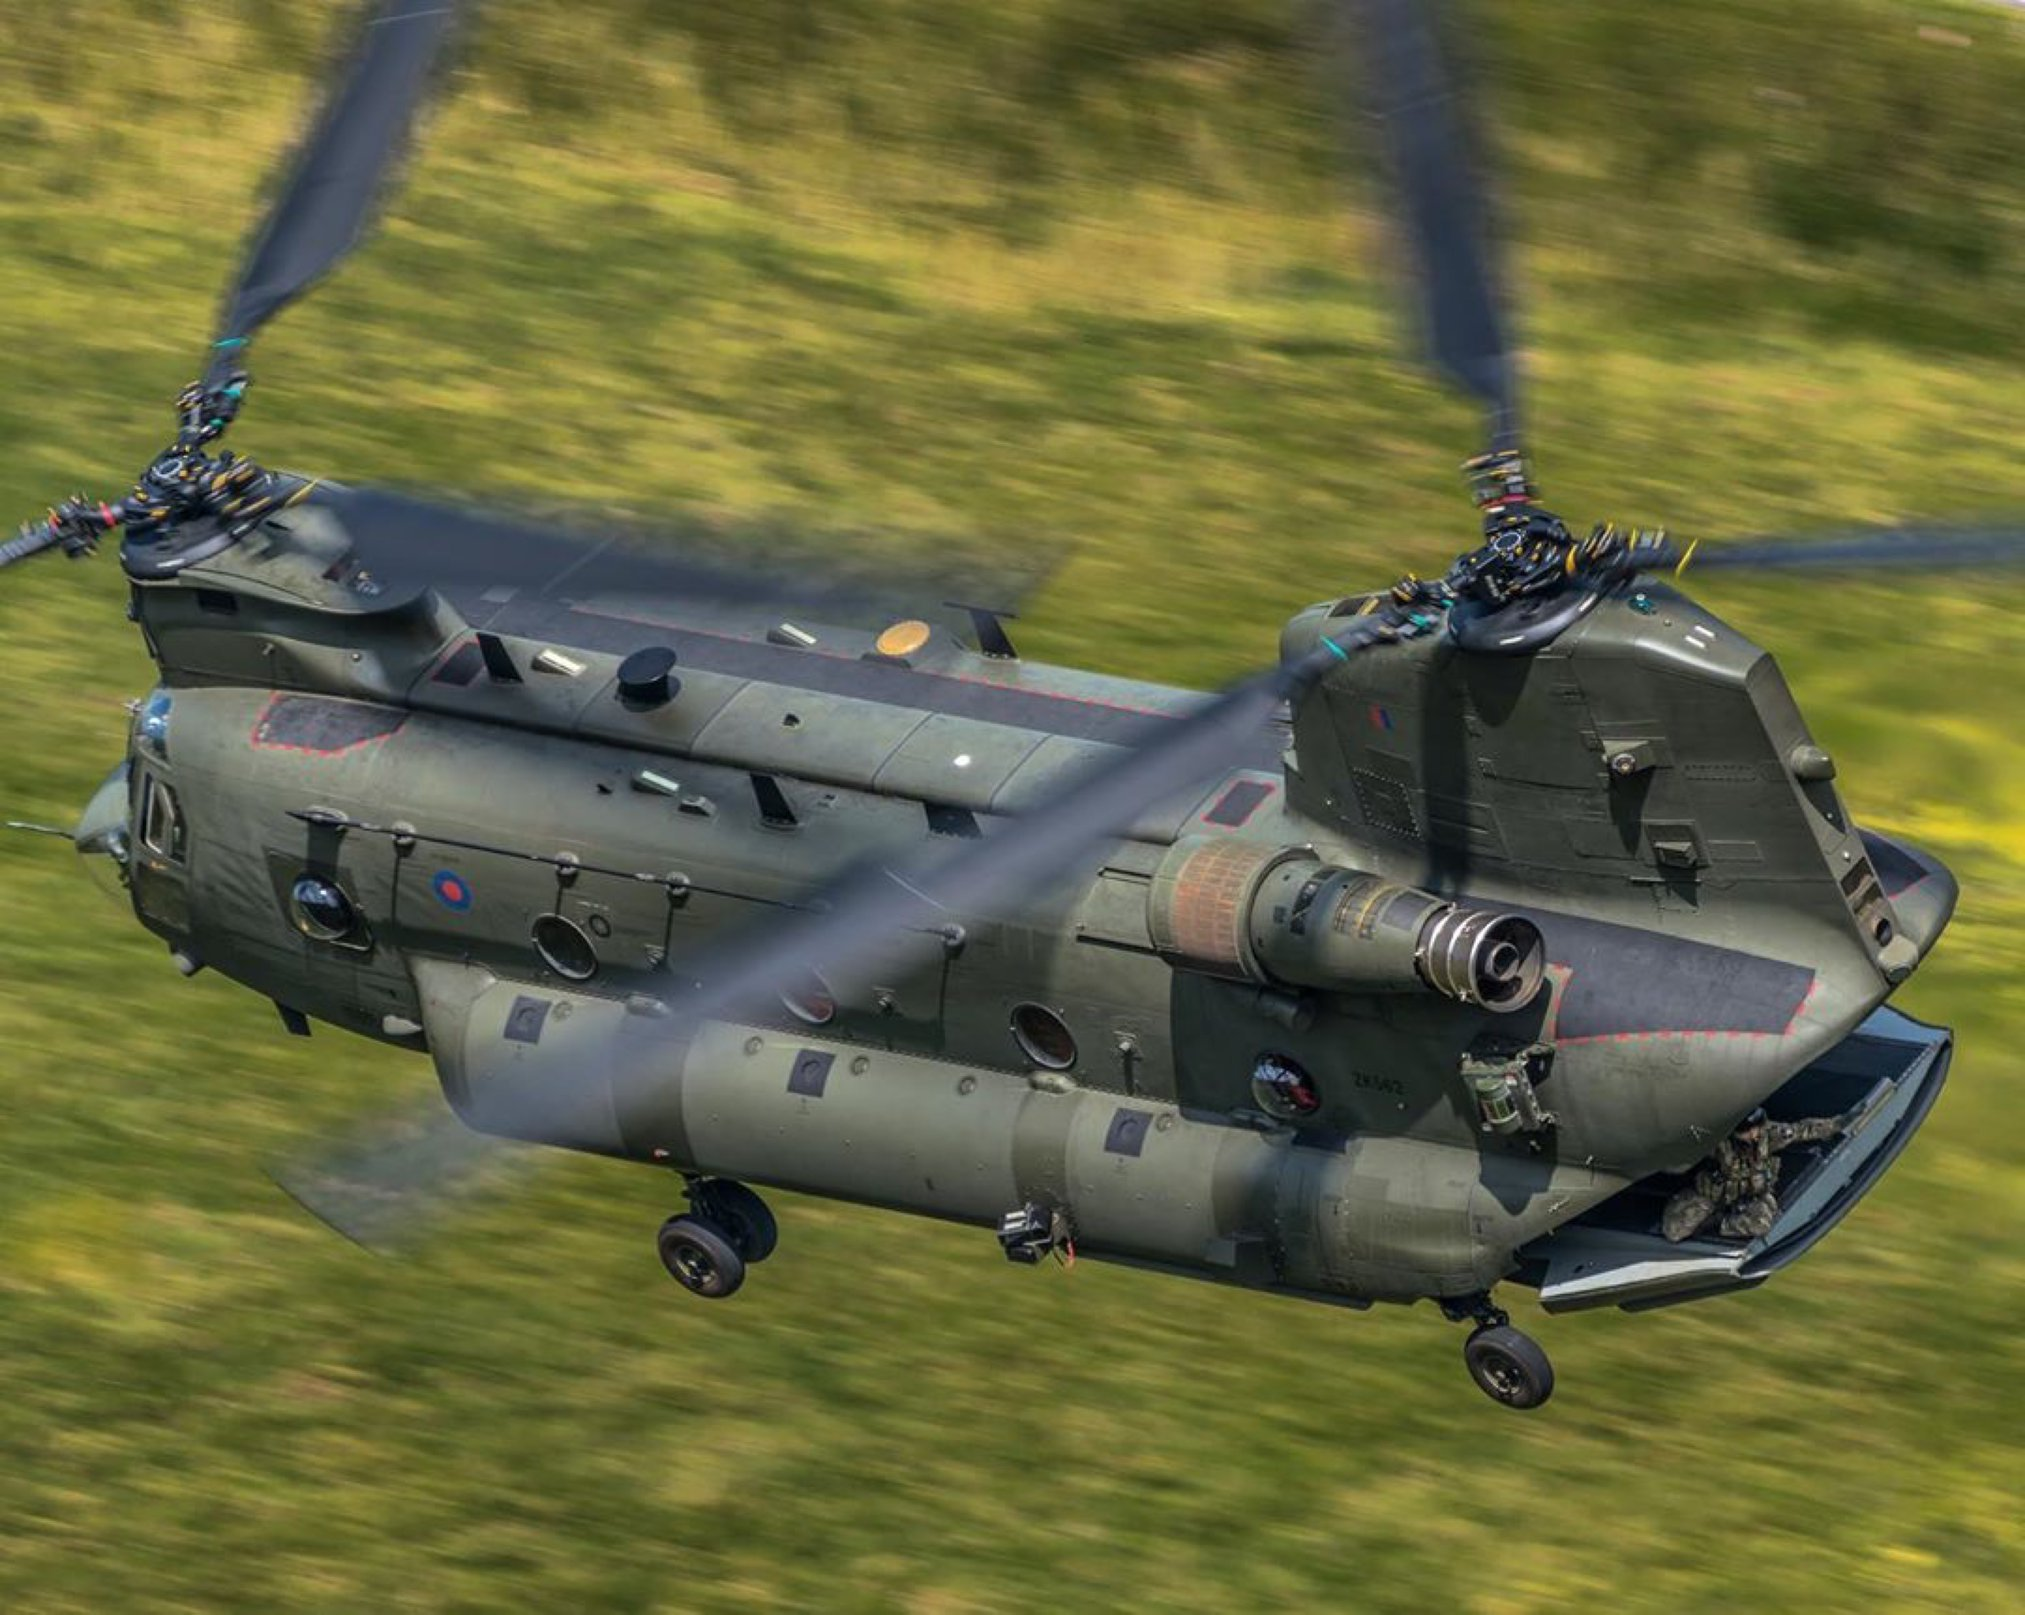 A mighty Chinook in the Mach Loop. Photo submitted by Instagram user @sound_of_kerosene using #verticalmag